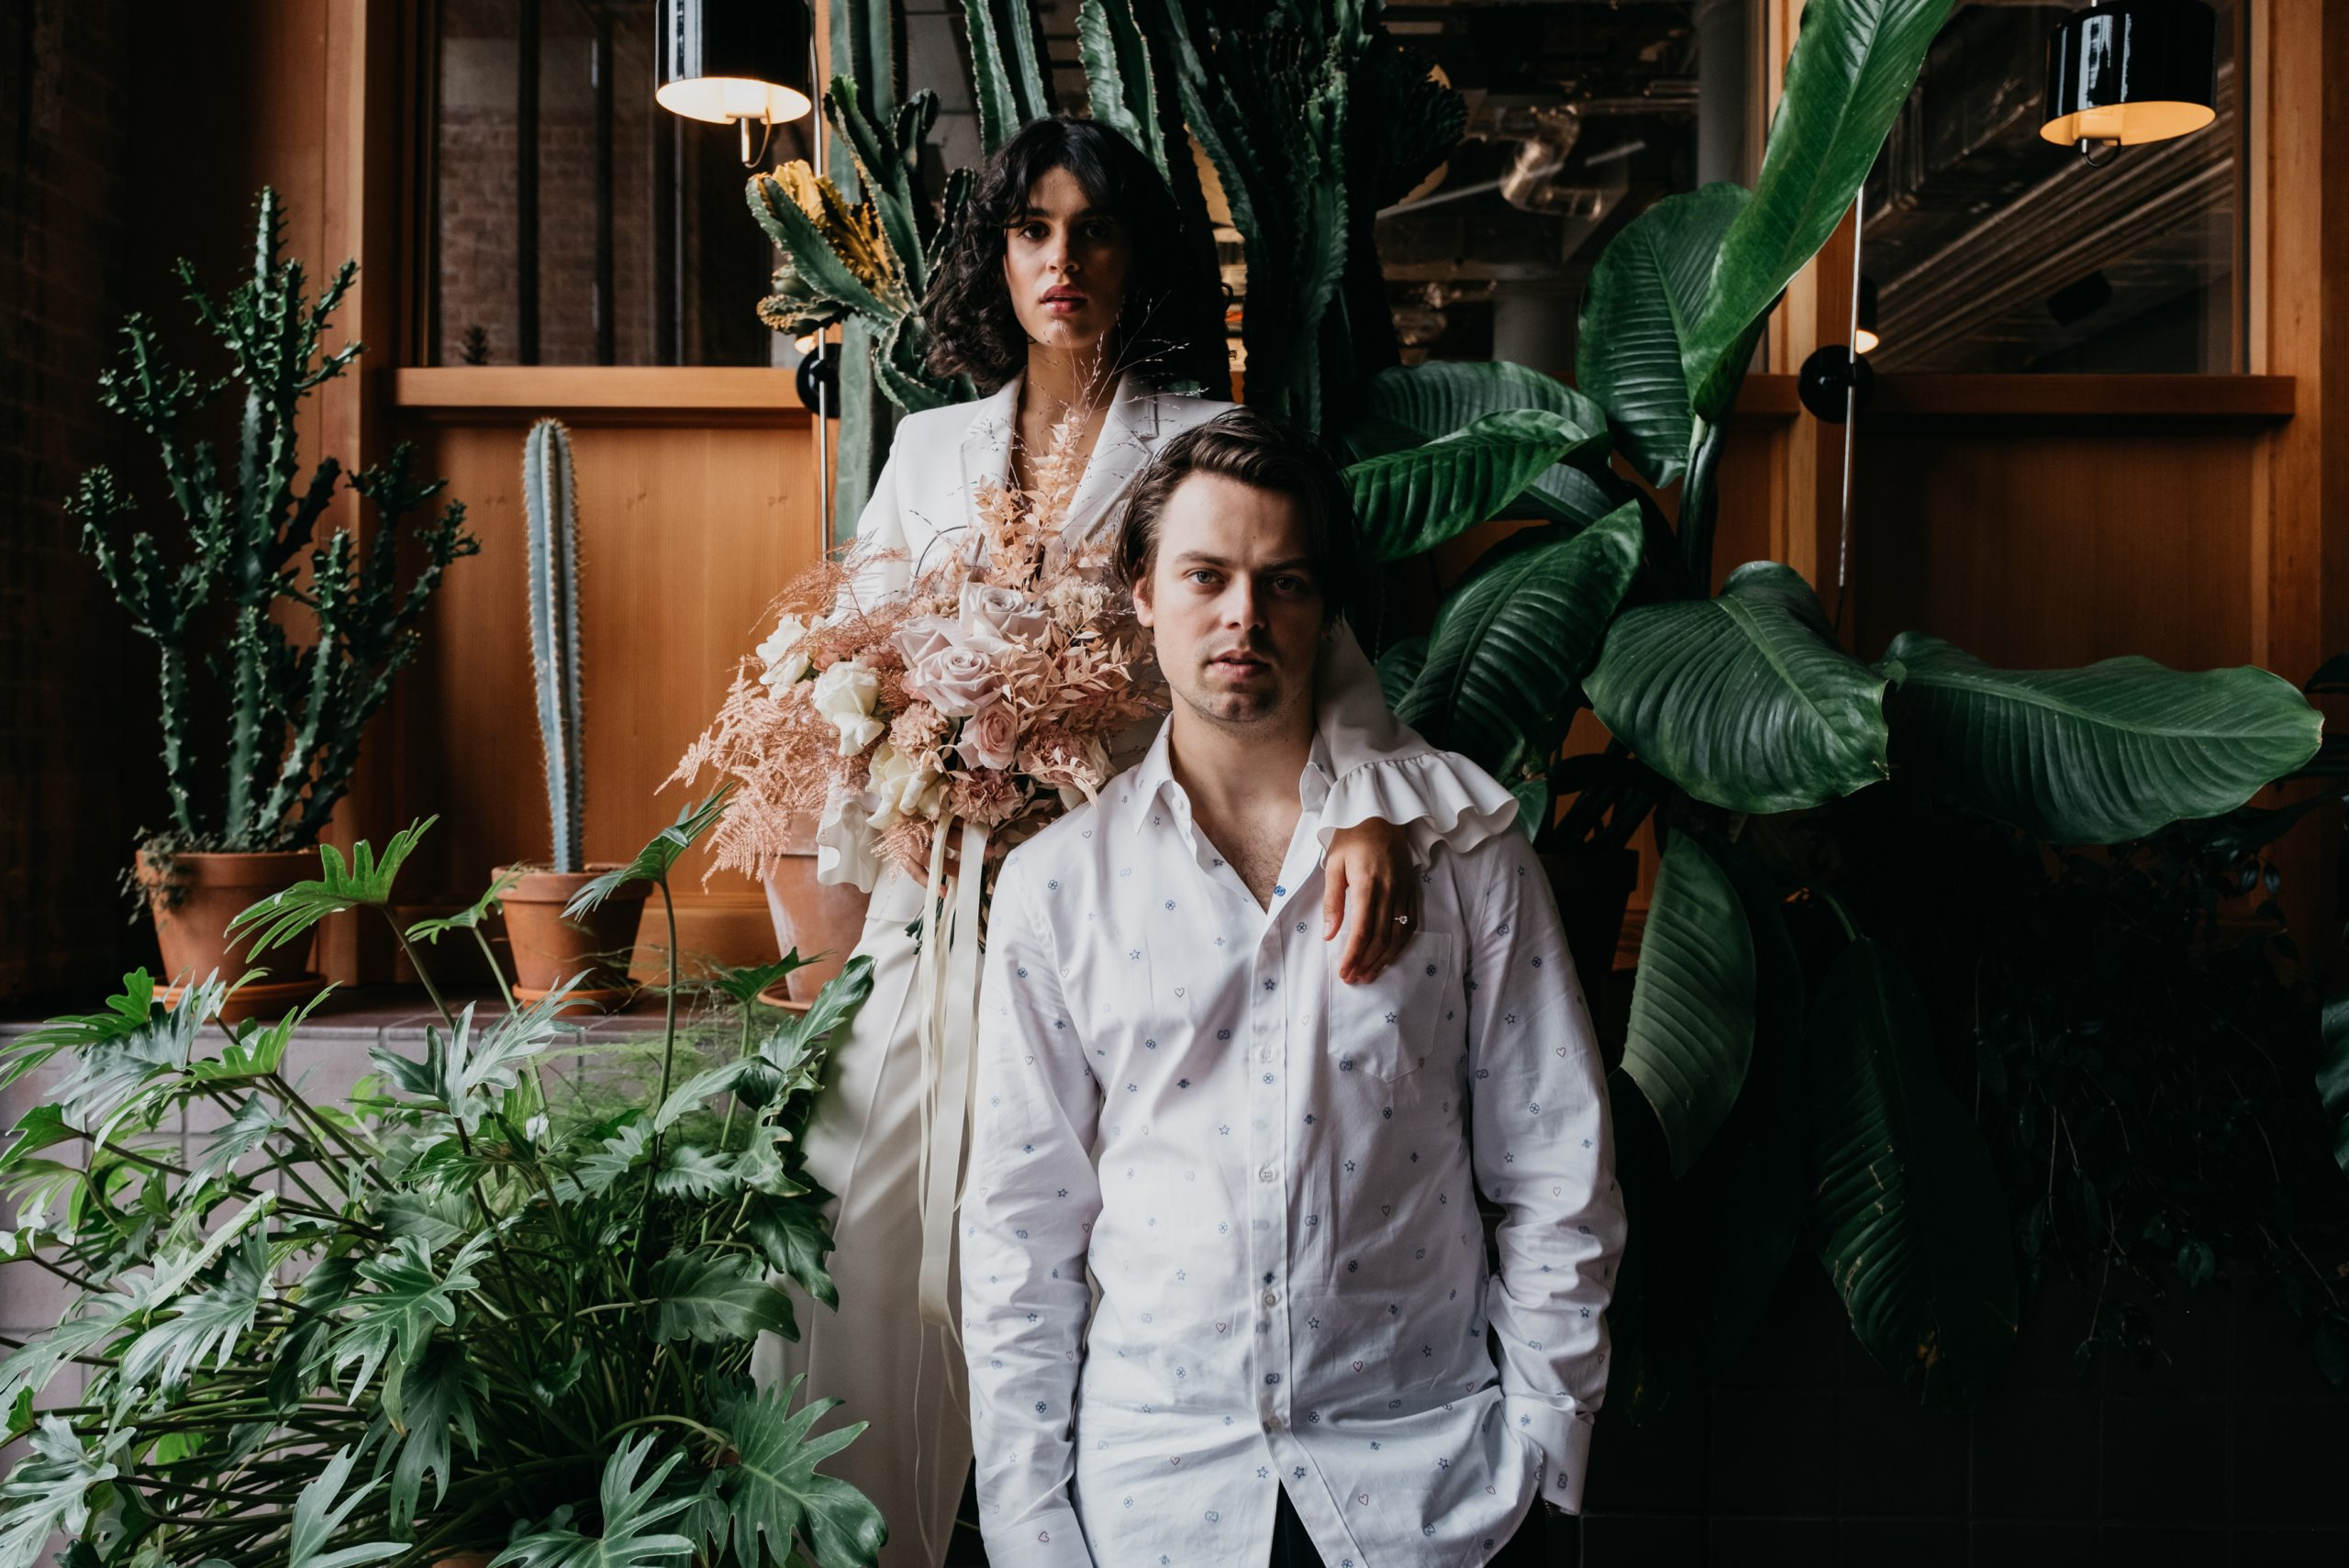 An intimate, botanical wedding at Ducie Street Warehouse